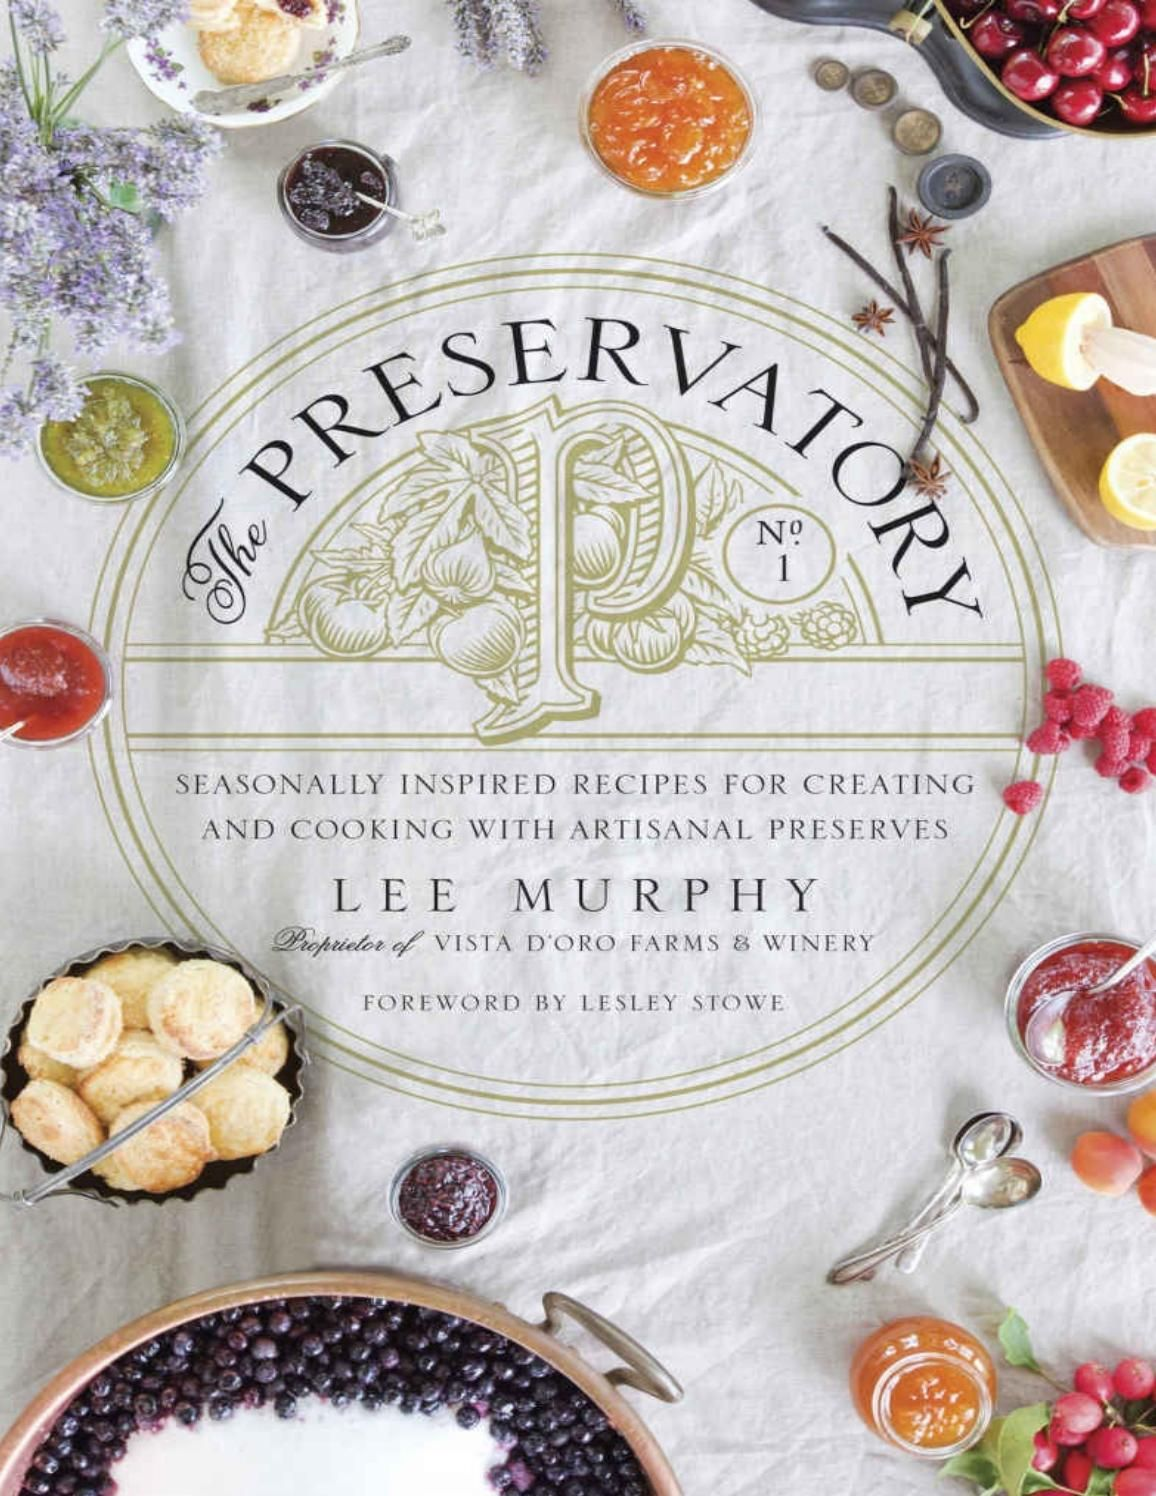 The preservatory issuu pdf download my likes pinterest pdf the hardcover of the the preservatory seasonally inspired recipes for creating and cooking with artisanal preserves by lee murphy at barnes noble forumfinder Images